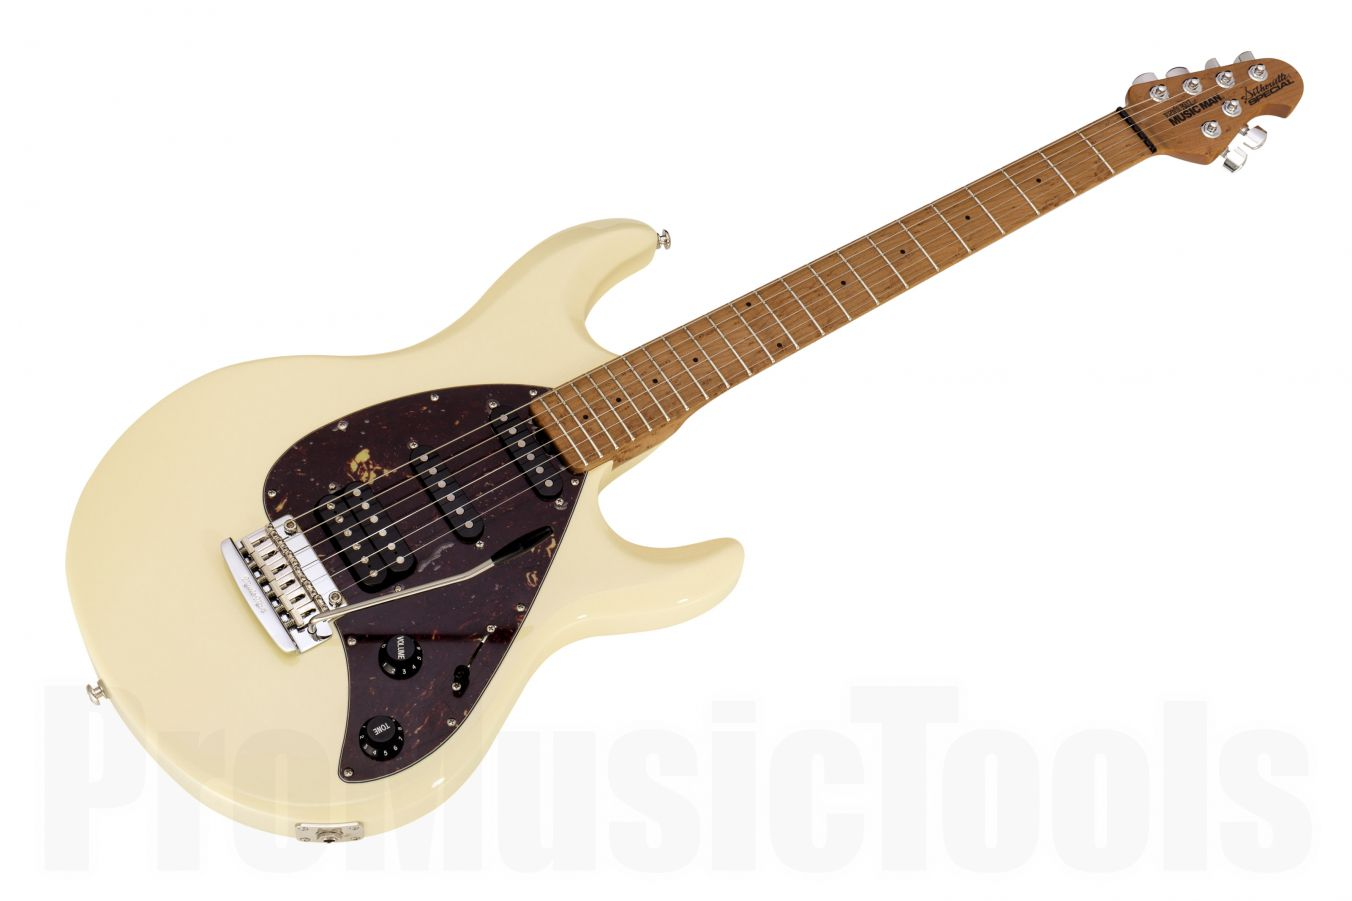 Music Man USA Silhouette Special HSS Trem BC - Buttercream Roasted Neck Limited Edition